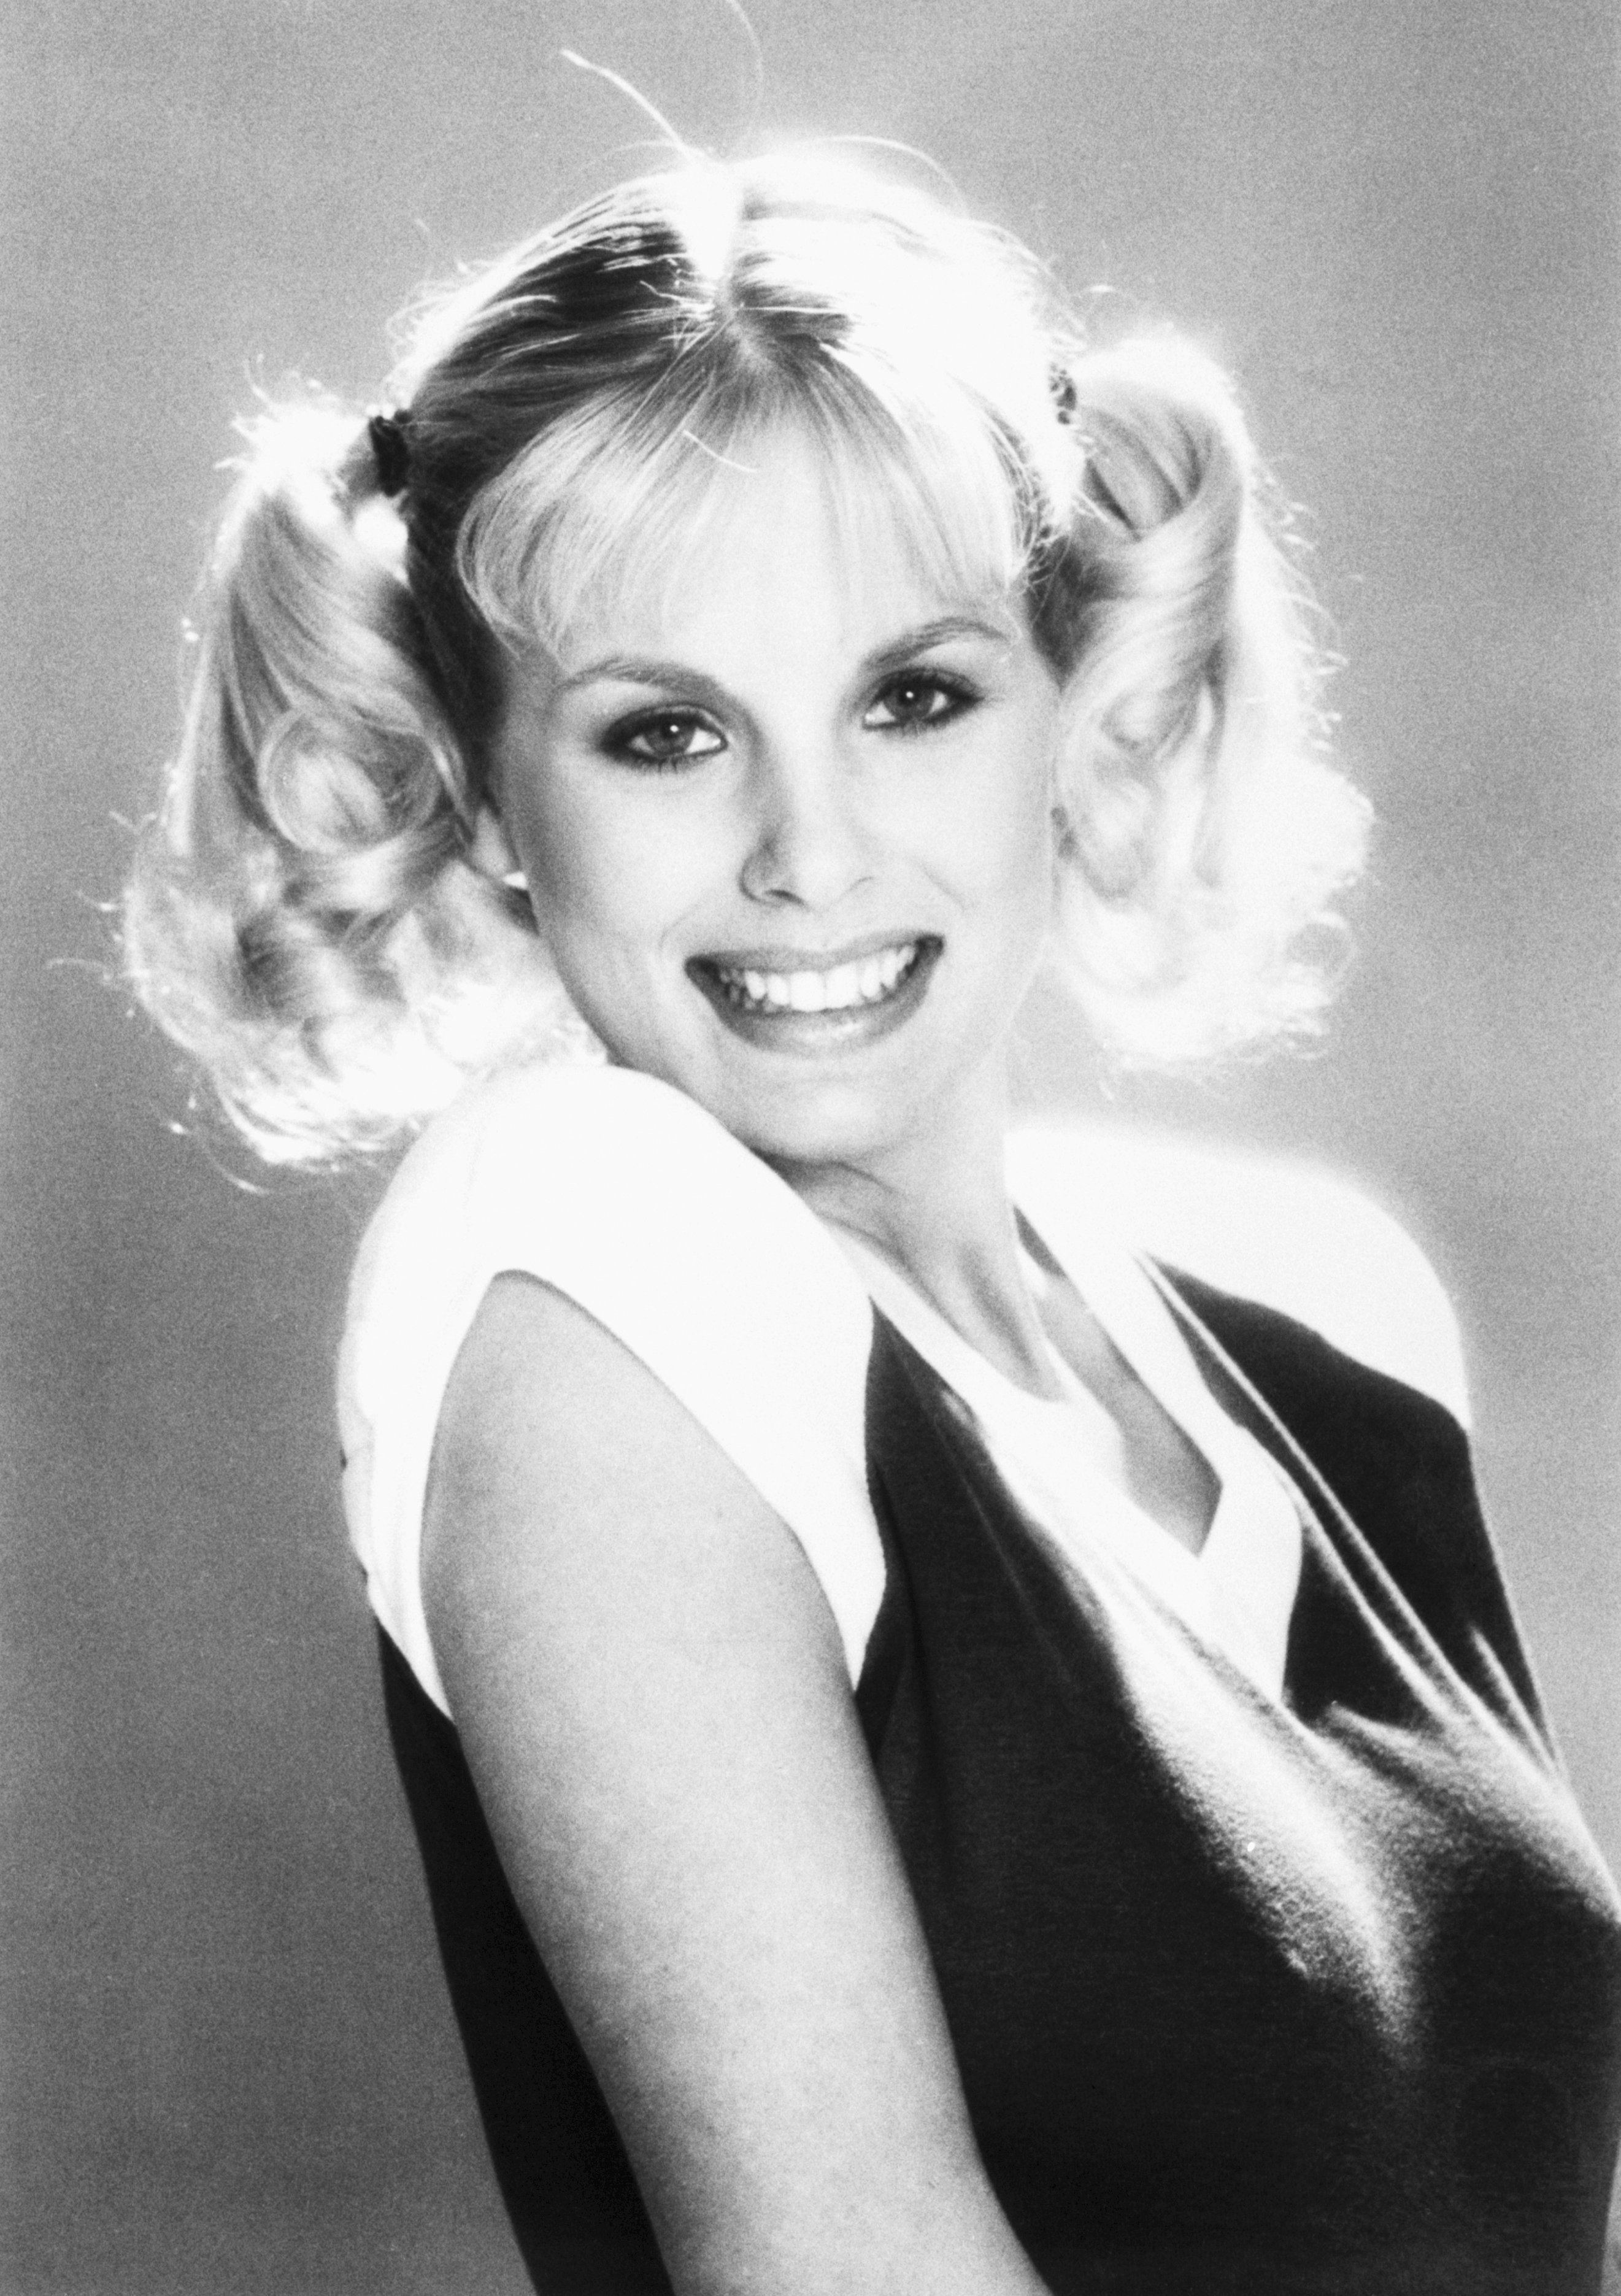 Playboy Magazine's 1980 Playmate of the Year, Dorothy Stratten, 20, on  8/15/1980-Los Angeles   Source: Getty Images